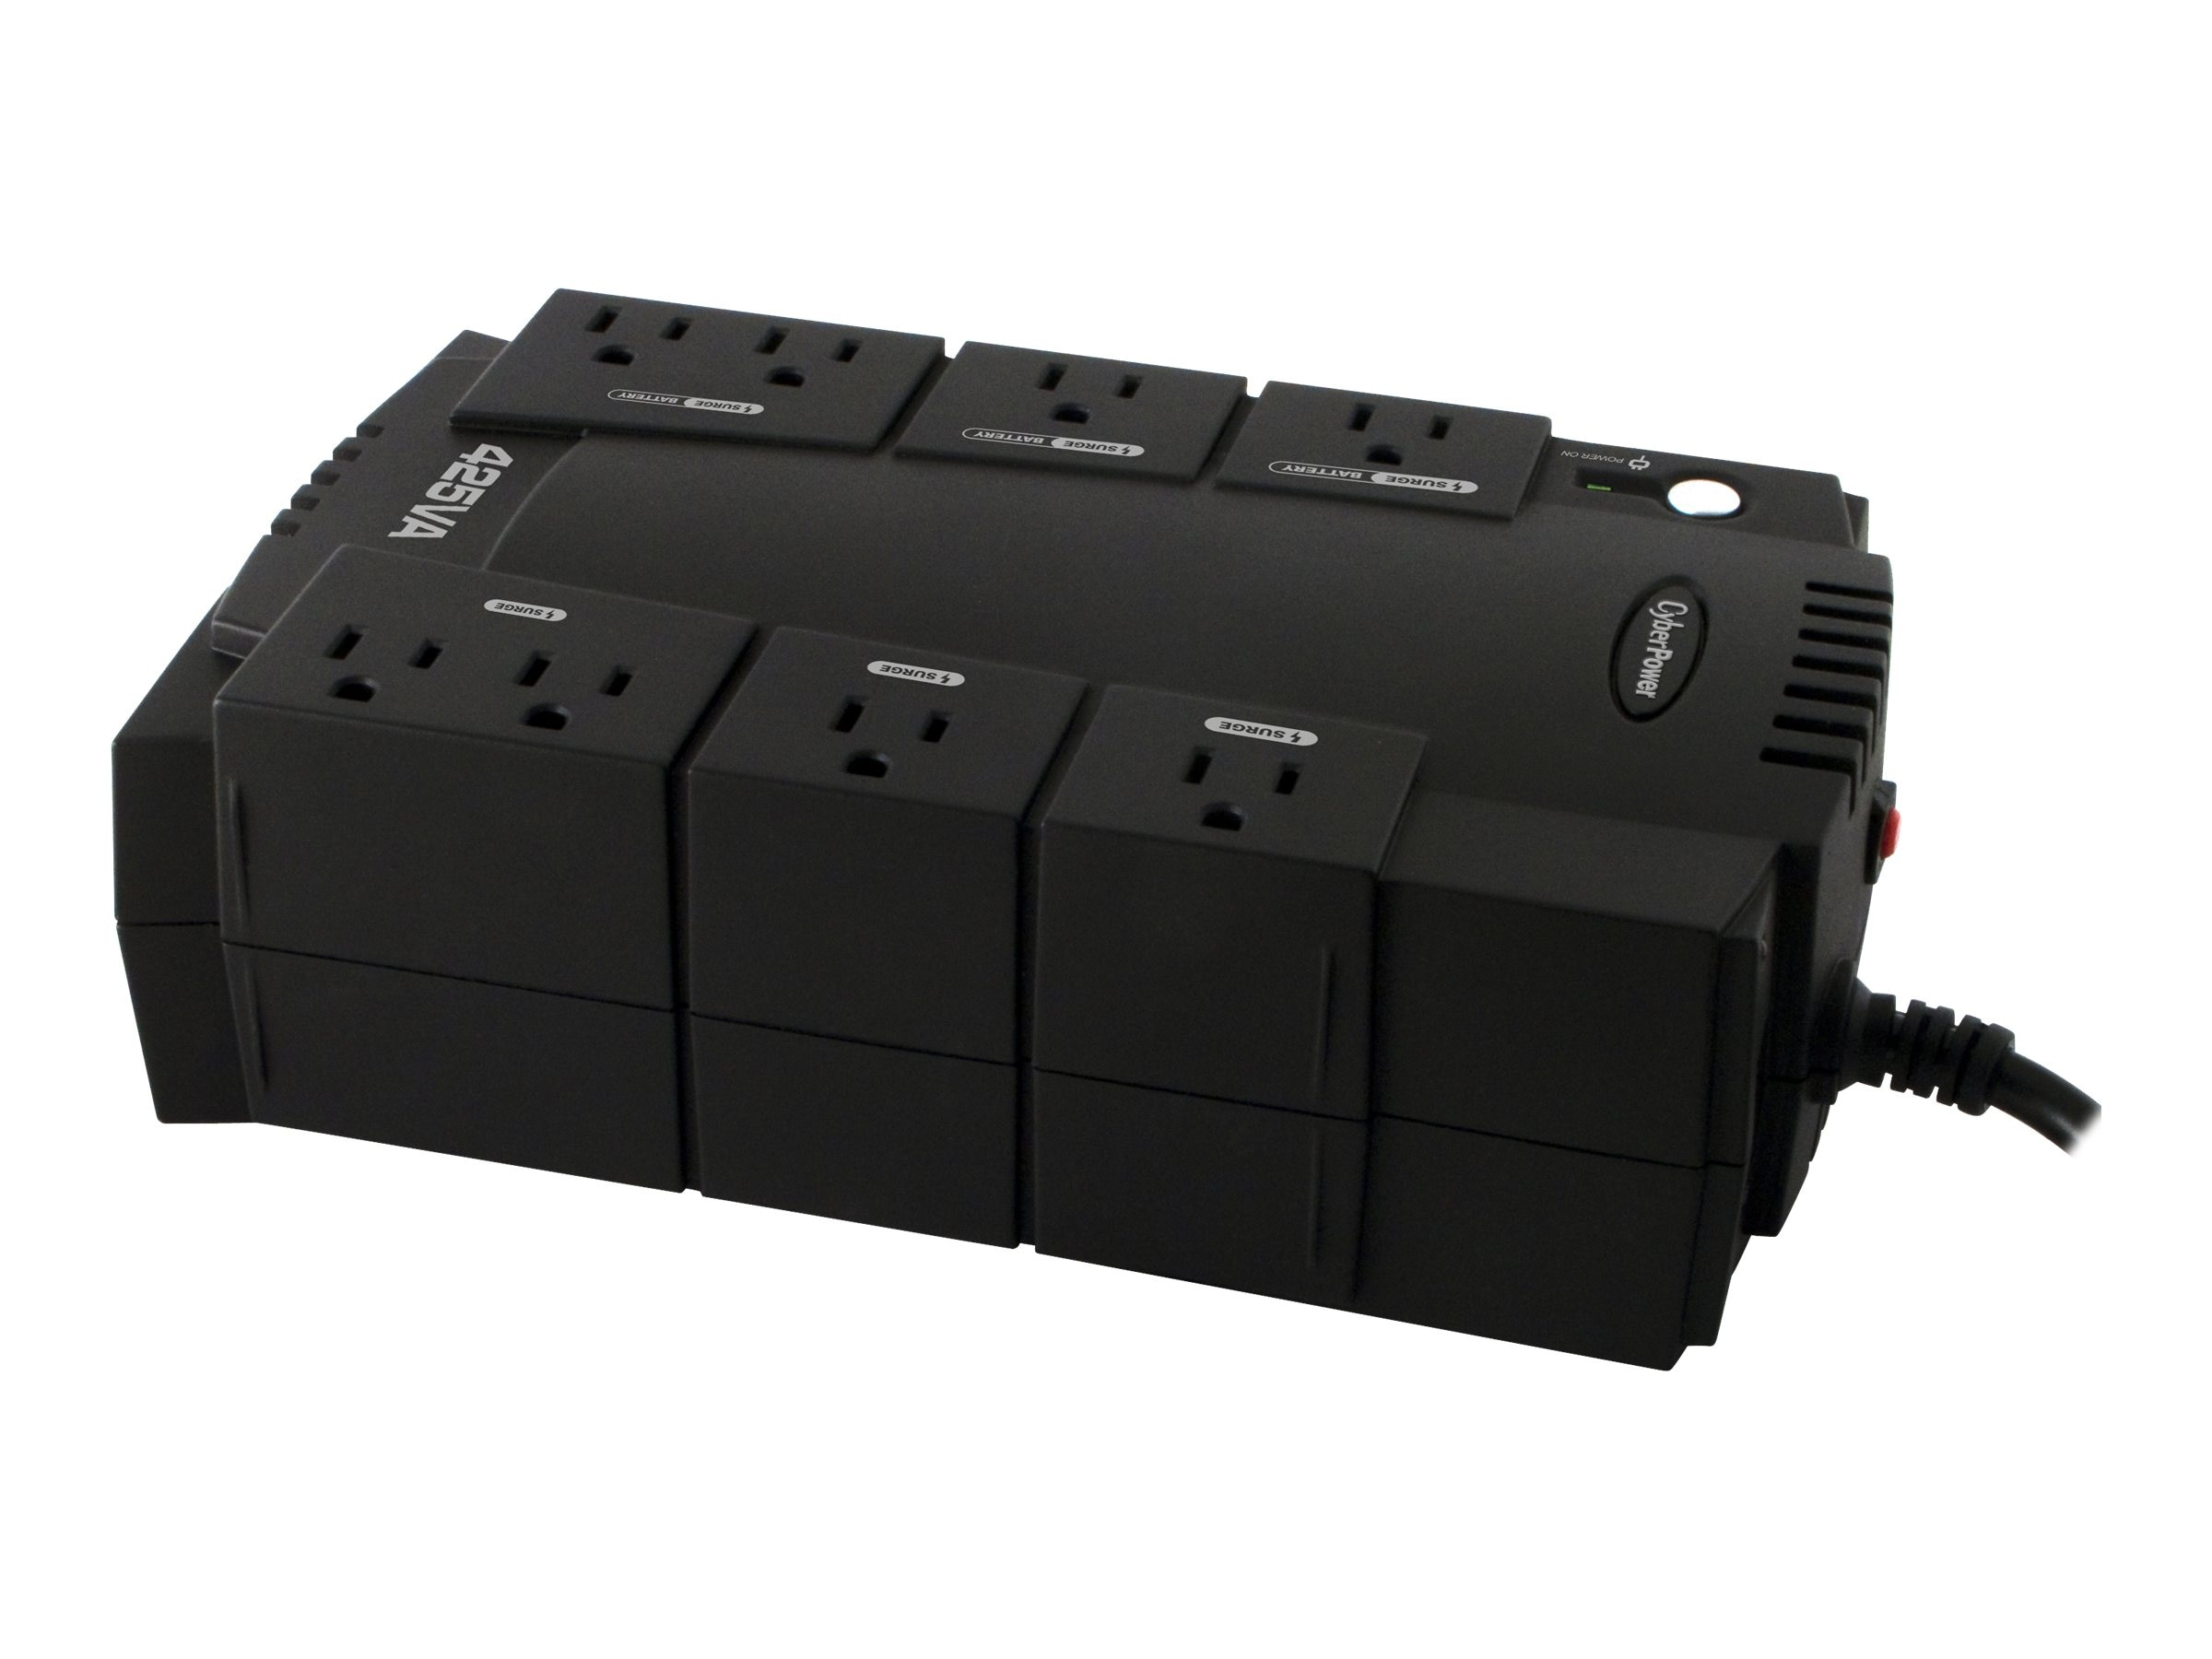 CyberPower 425VA Standby Green UPS (8) 5-15R Outlets USB, Management Software, CP425SLG, 10896322, Battery Backup/UPS